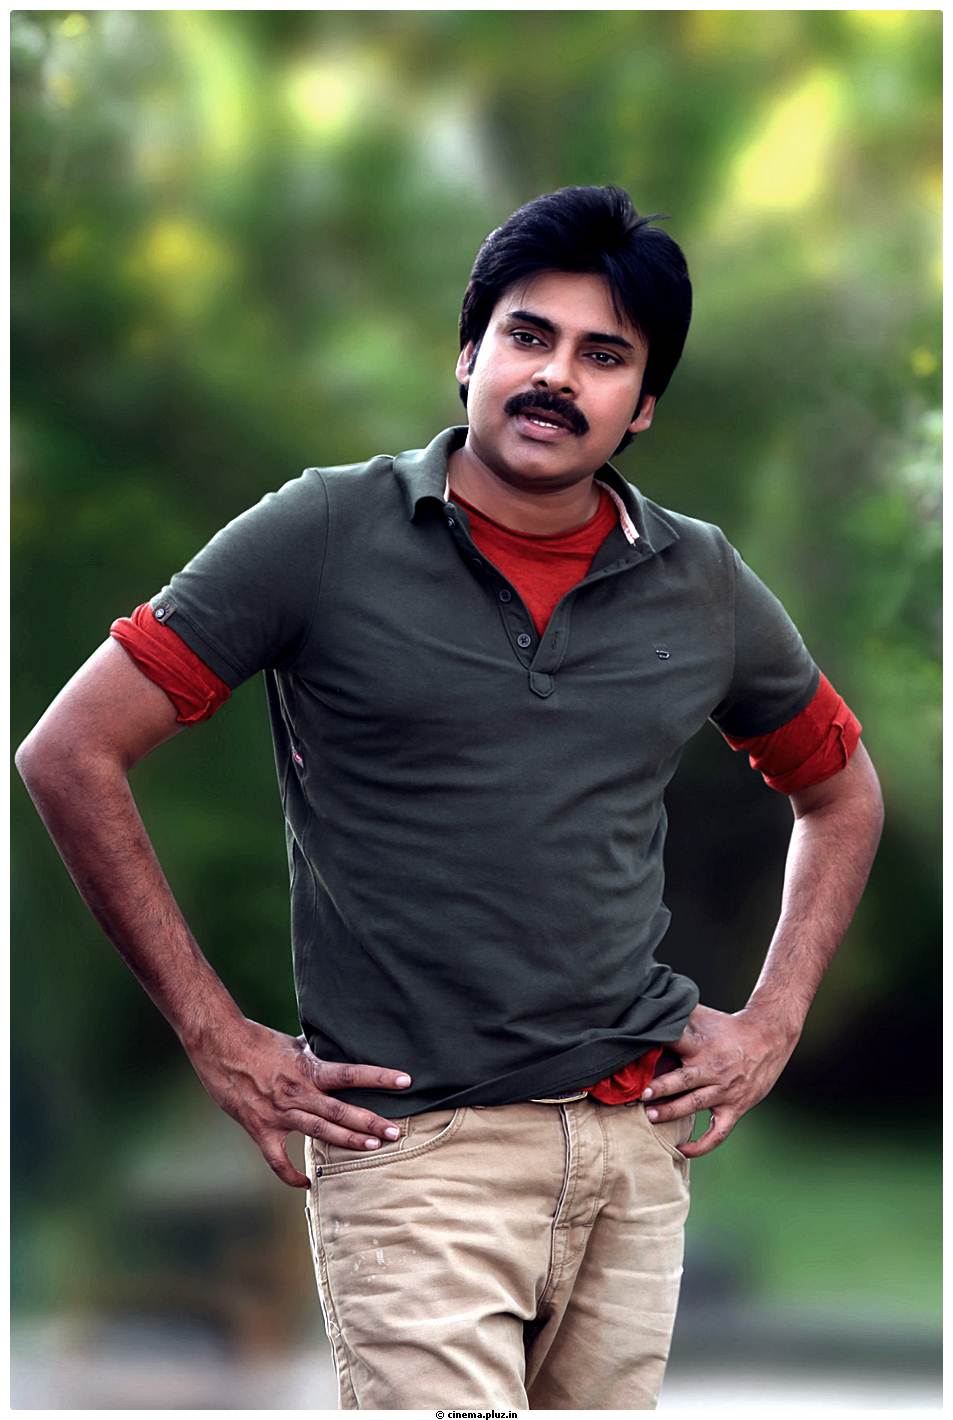 pawan kalyan attarintiki daredi hd images ✓ labzada wallpaper